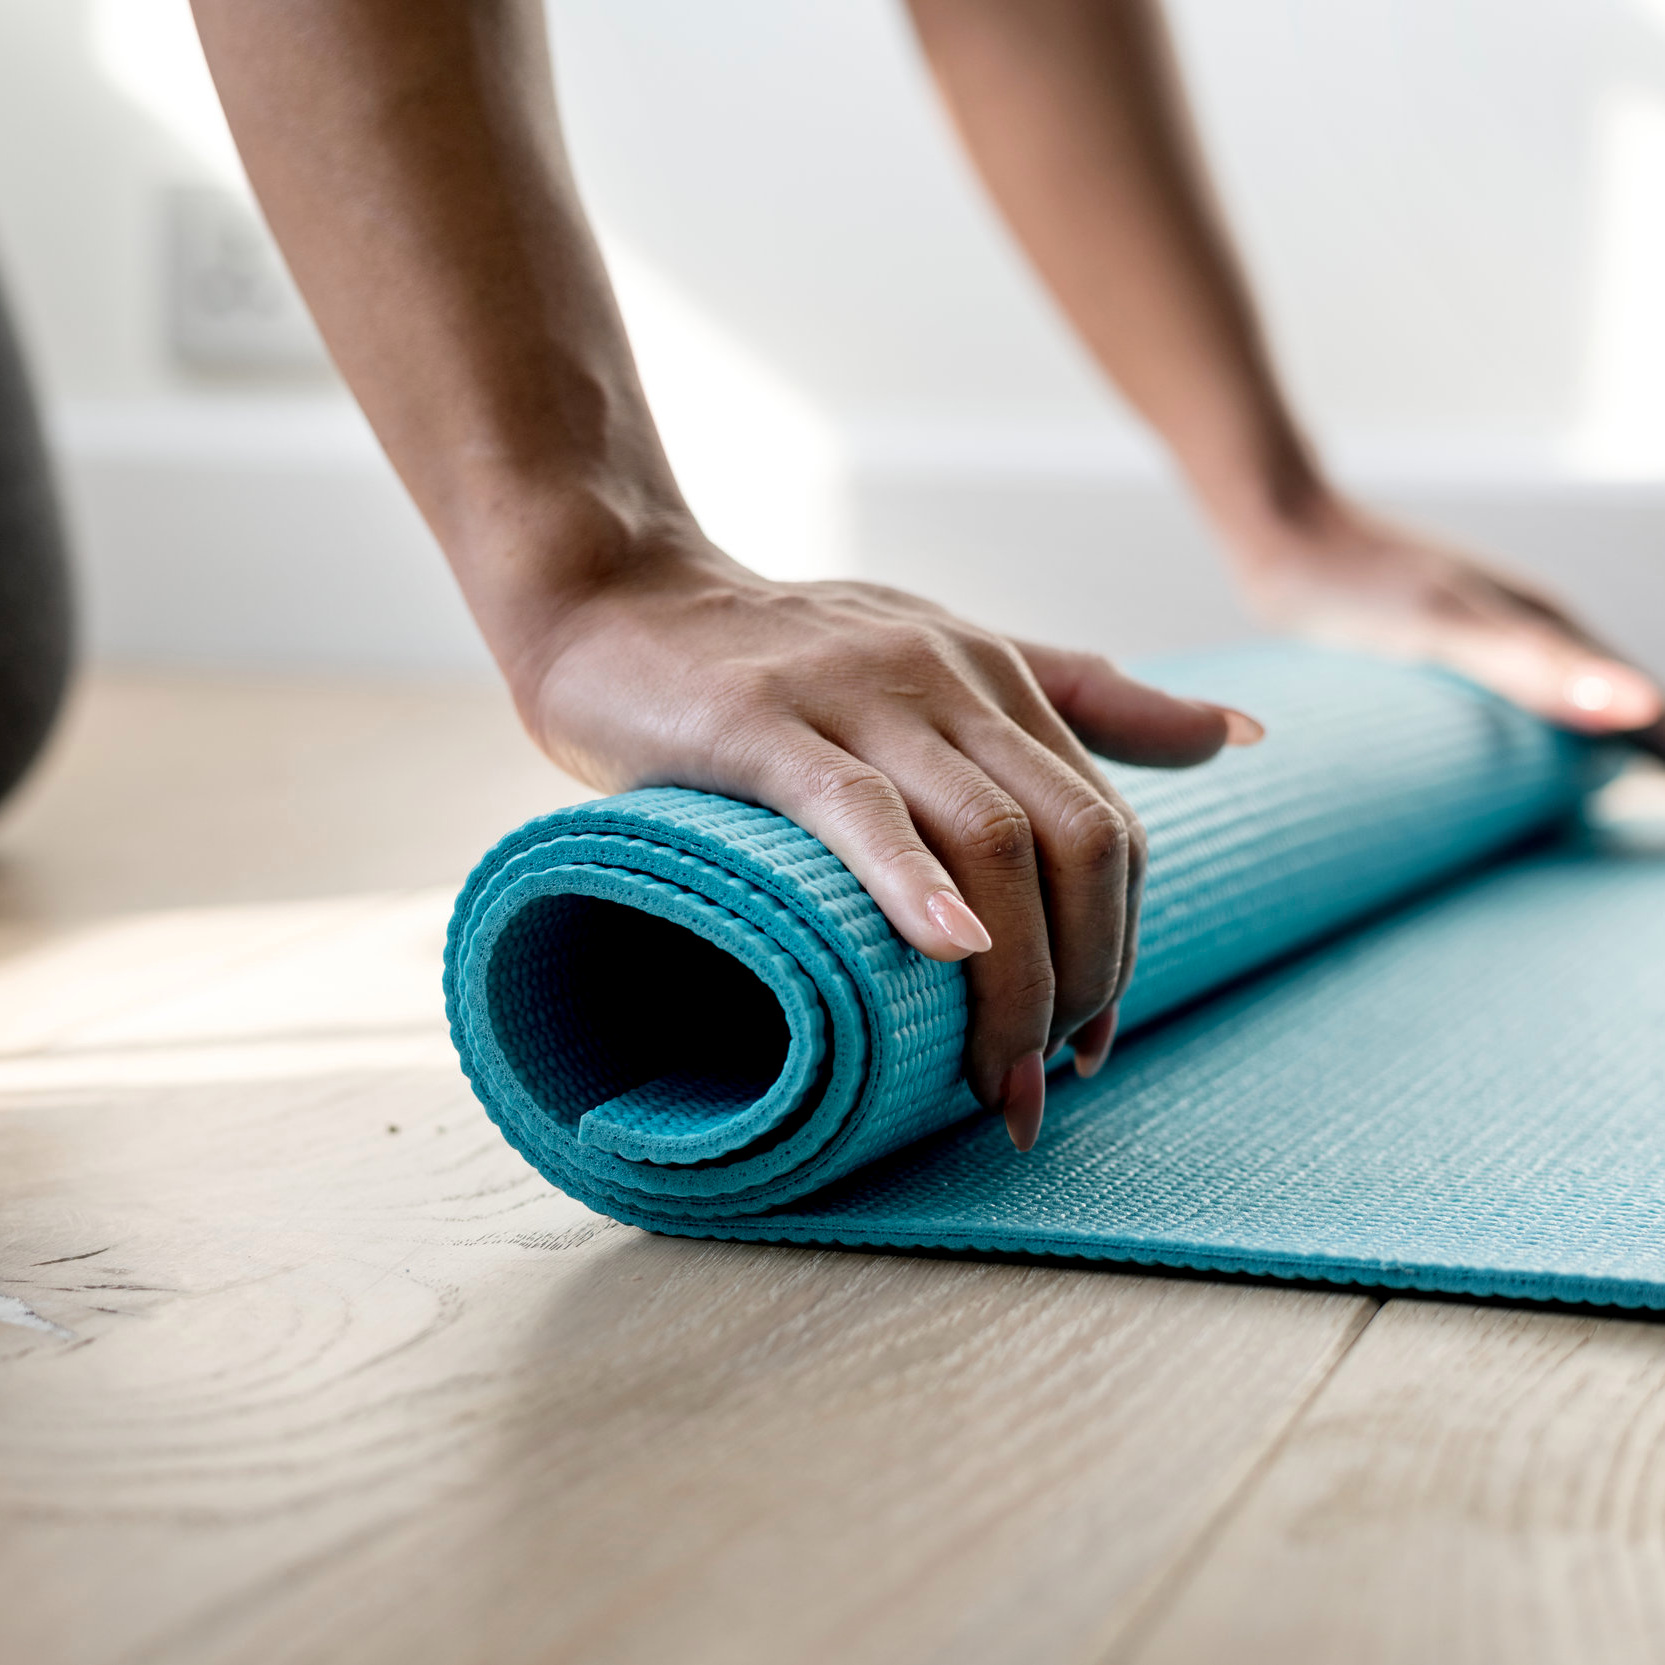 Trainingsin Yoga & Ayurveda - Tauche tiefer ein in das was du liebst!